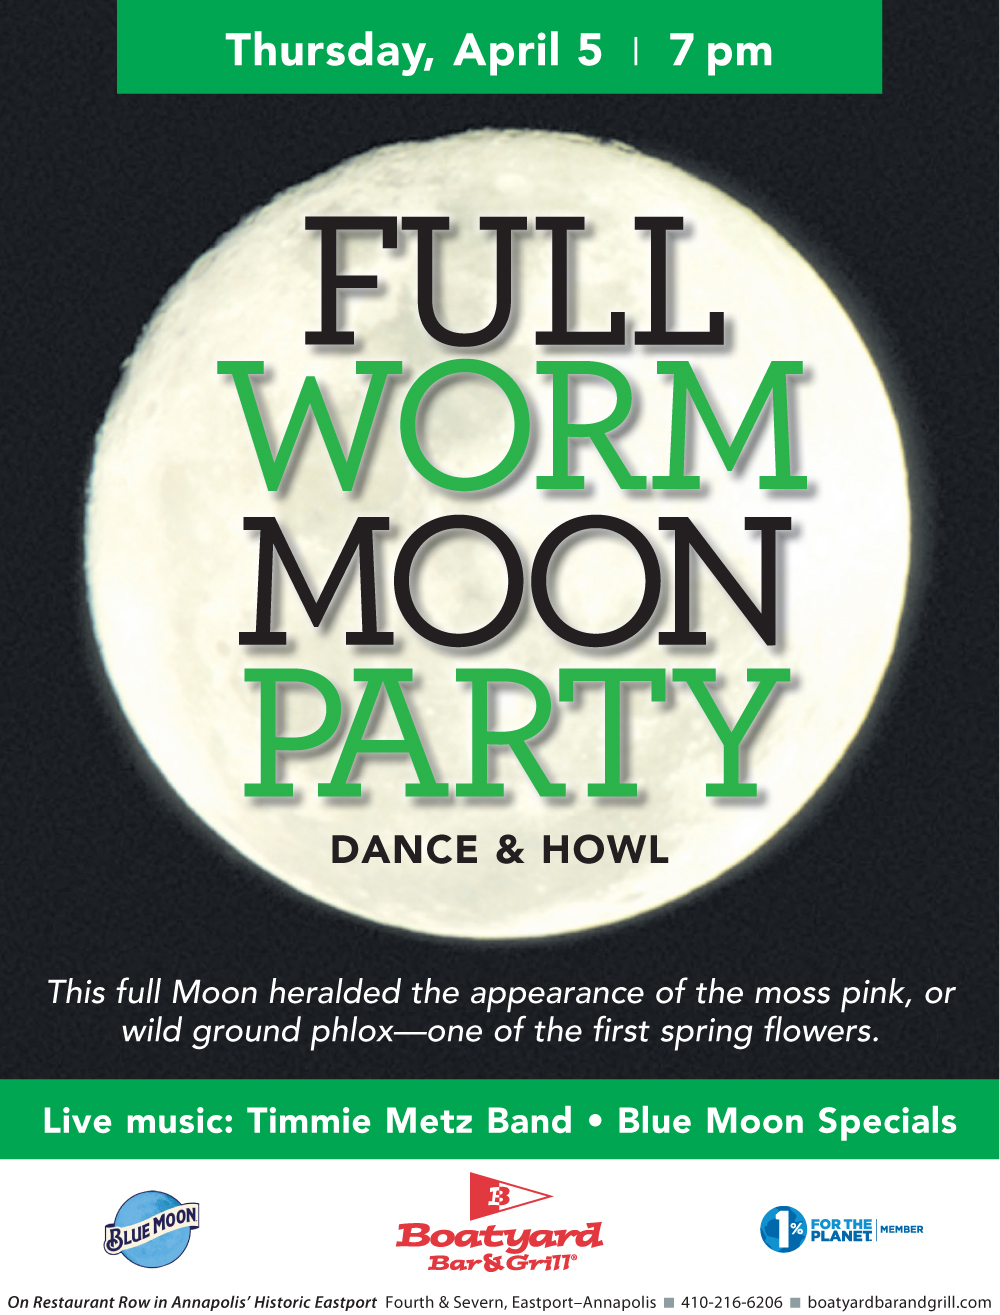 Boatyard-Full-Worm-Moon-Party-April